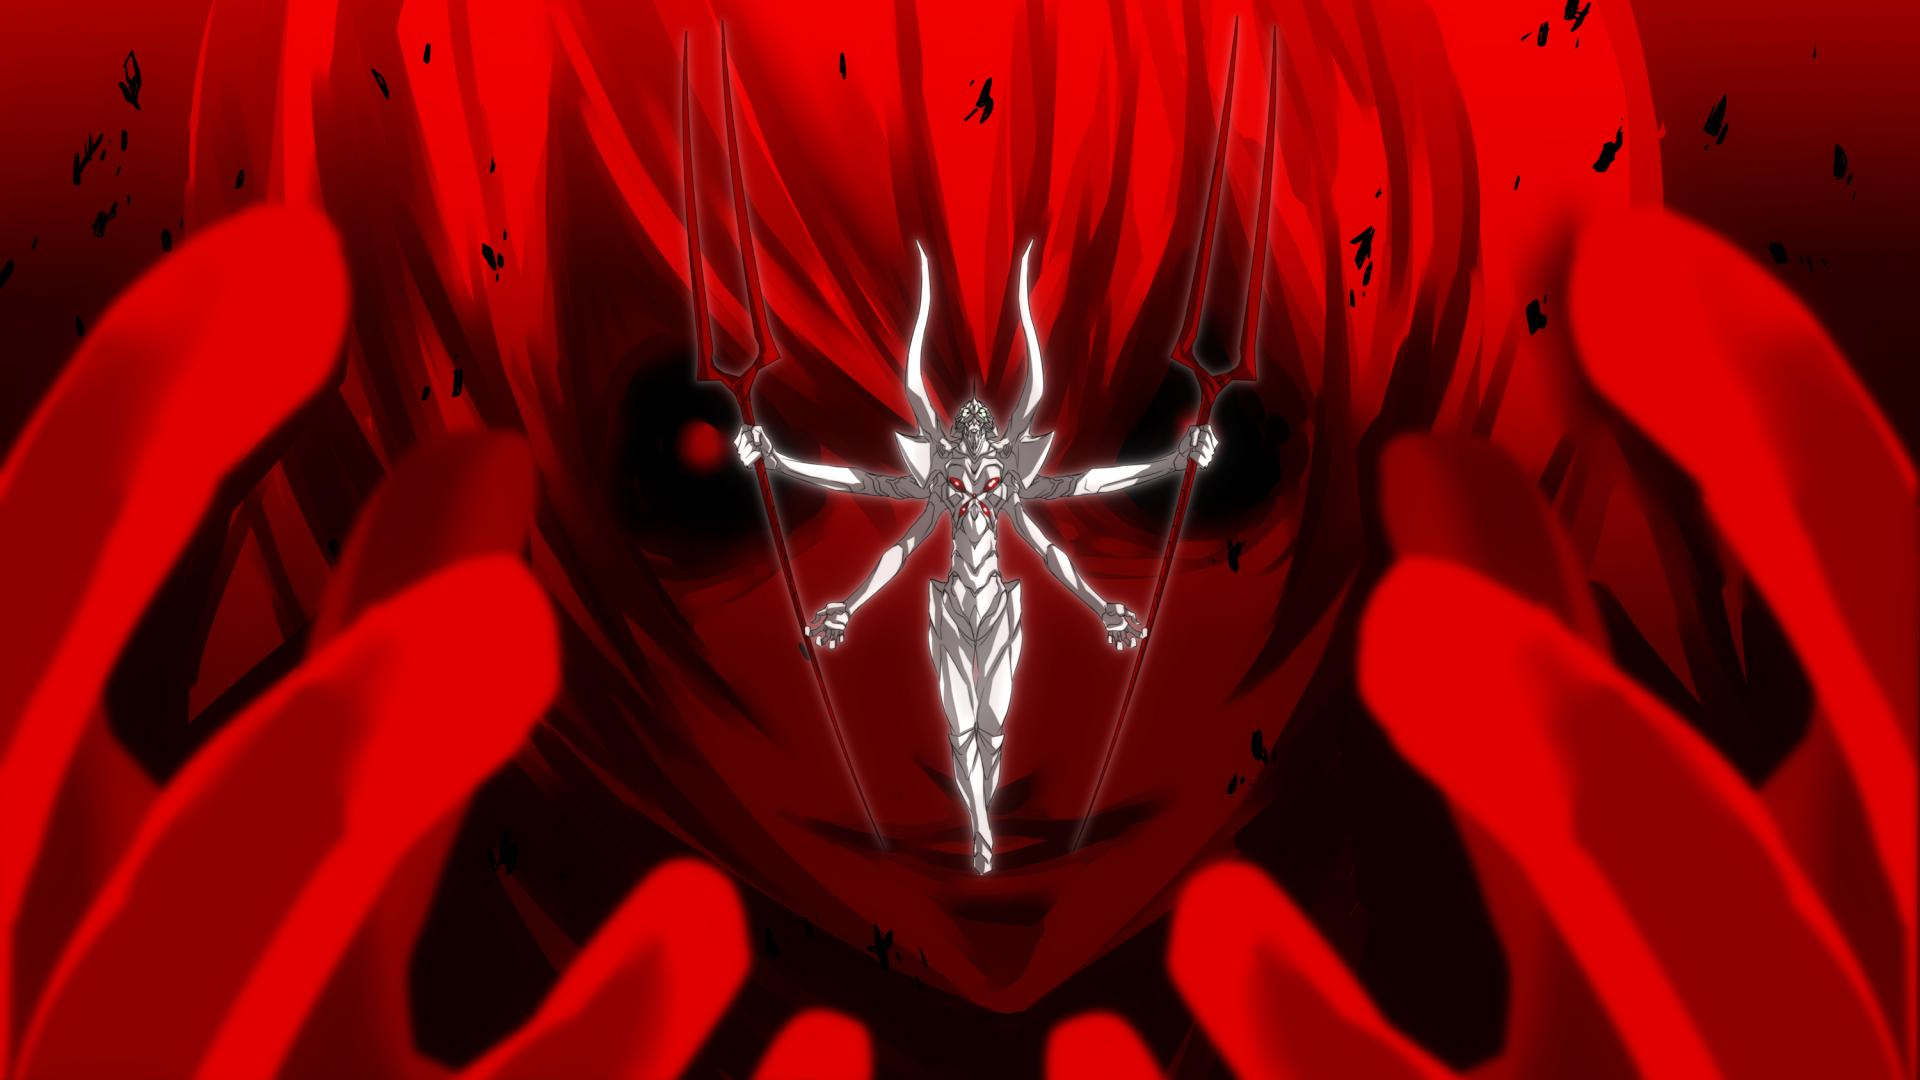 Evangelion Wallpapers Top Free Evangelion Backgrounds Wallpaperaccess